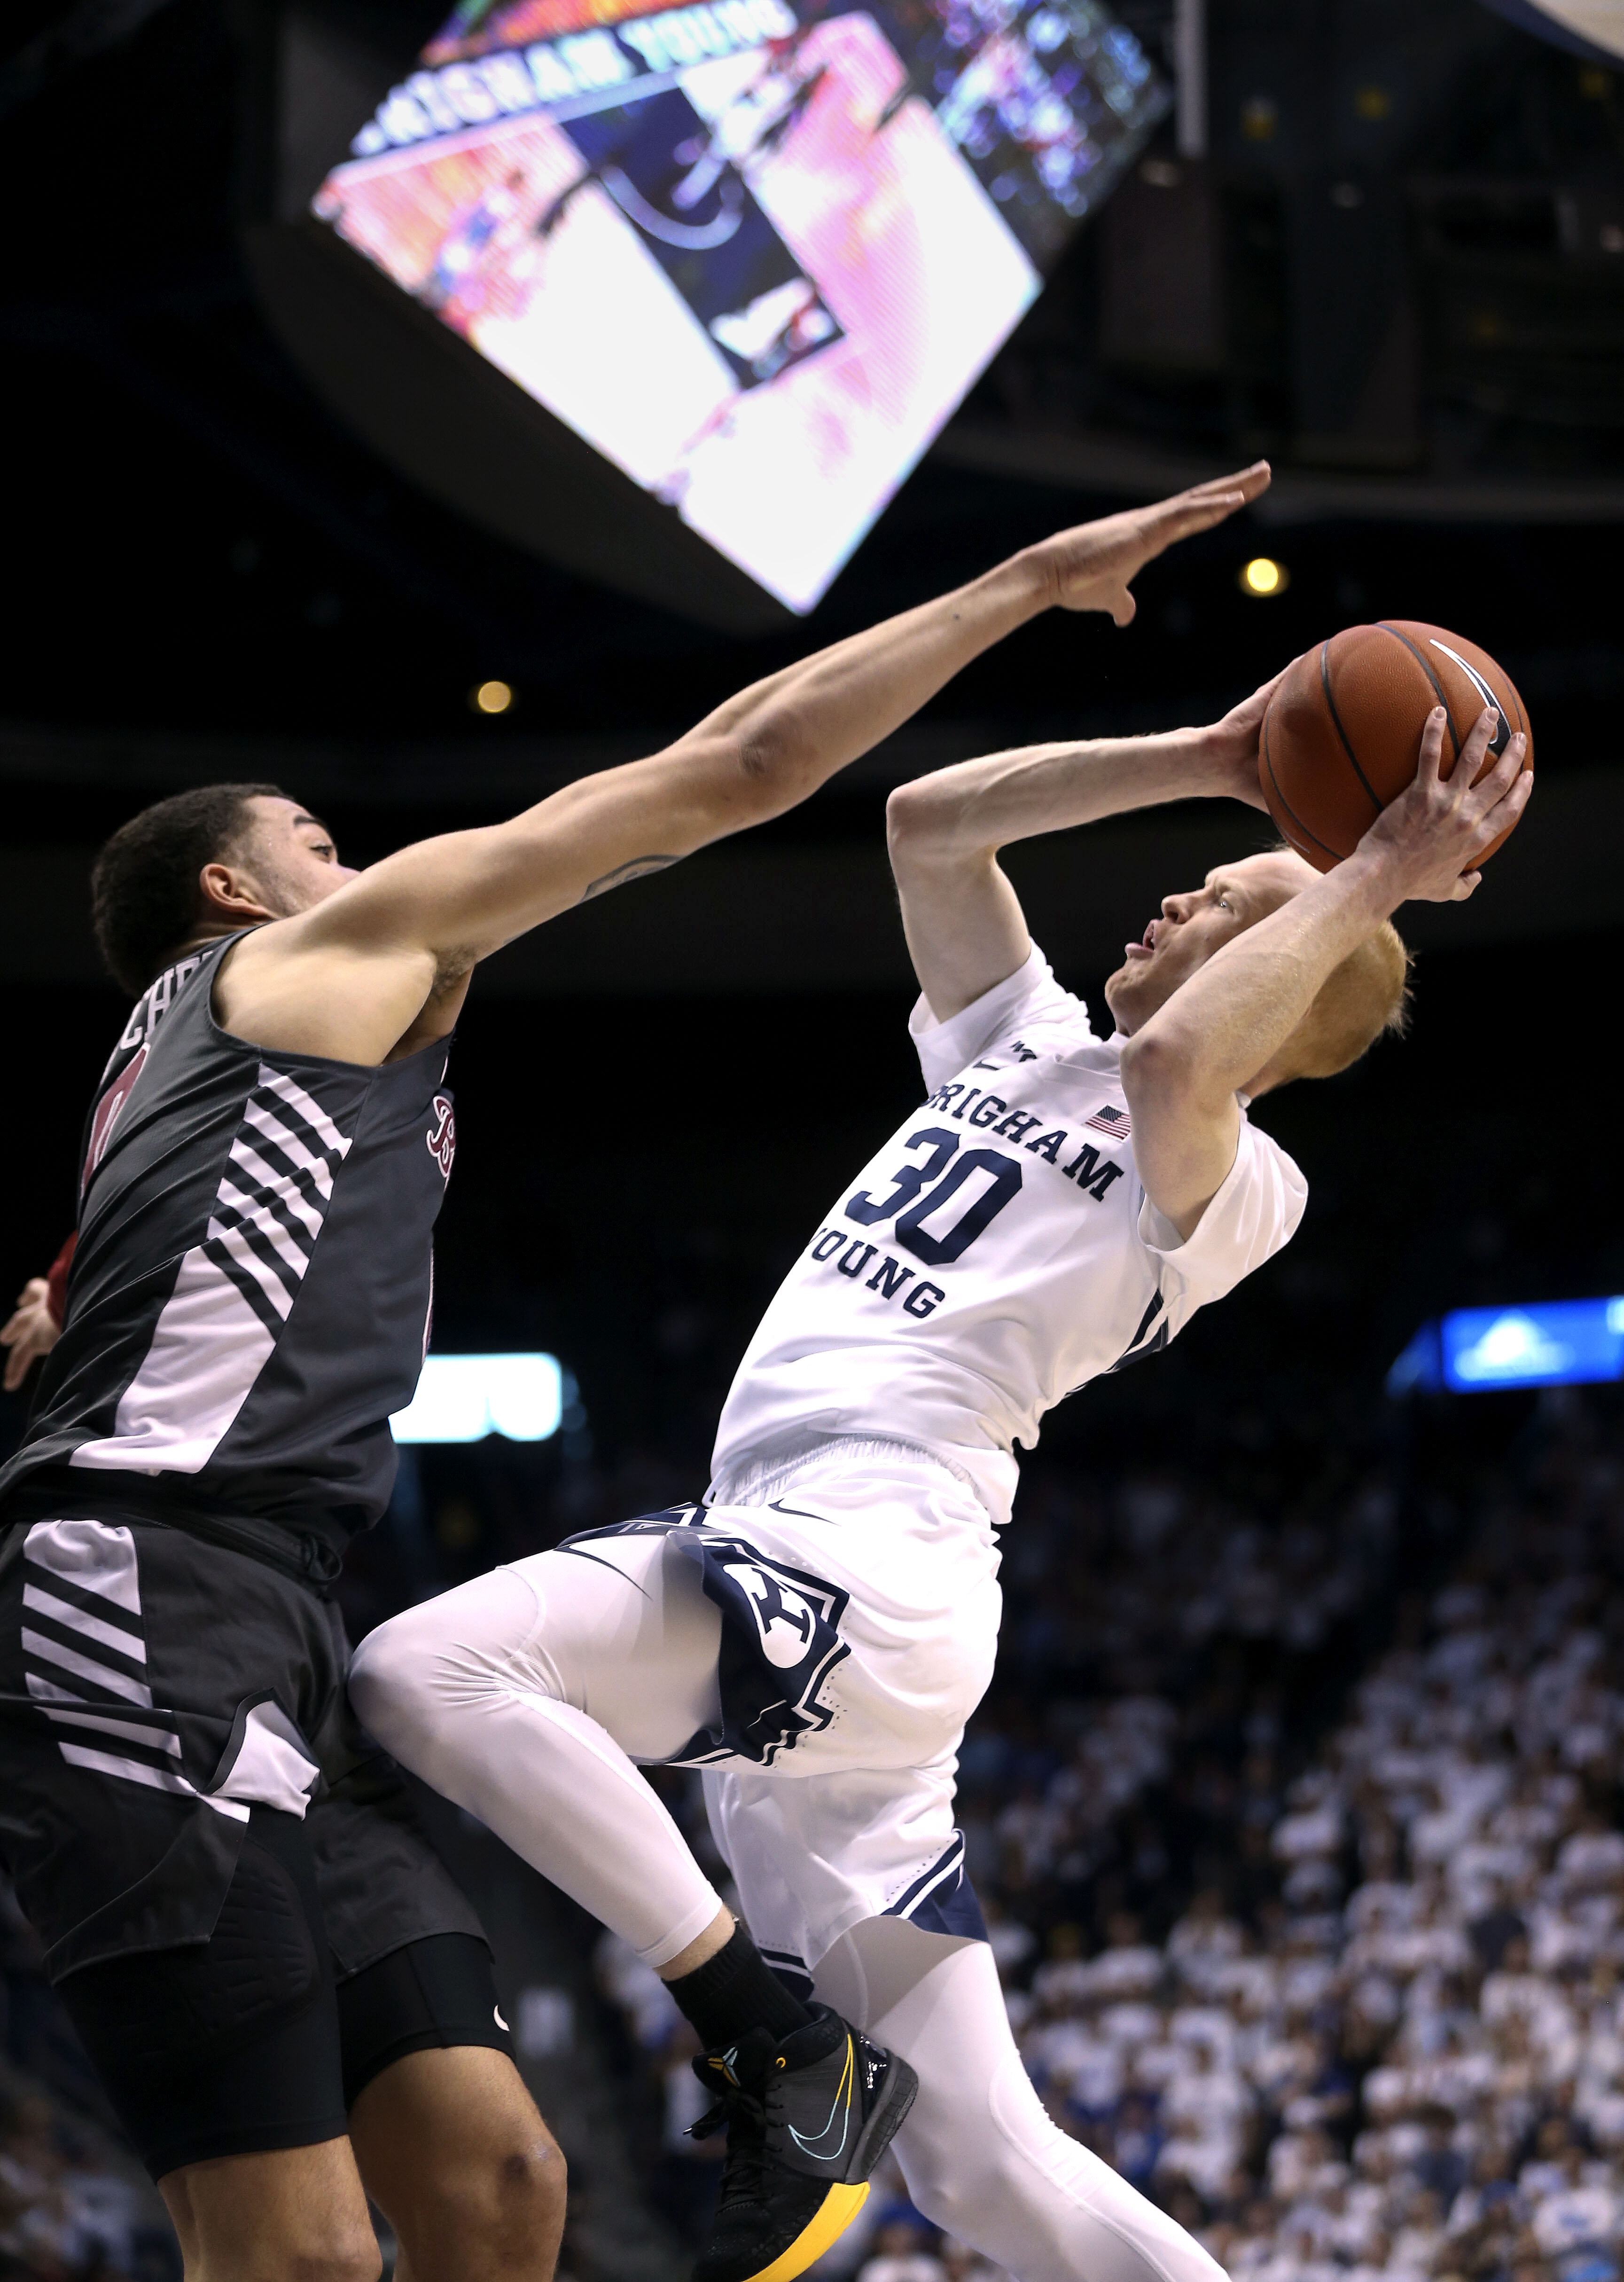 Santa Clara Broncos forward DJ Mitchell (0) tries to block but fouls Brigham Young Cougars guard TJ Haws (30) at Brigham Young University in Provo on Thursday, Feb. 20, 2020.